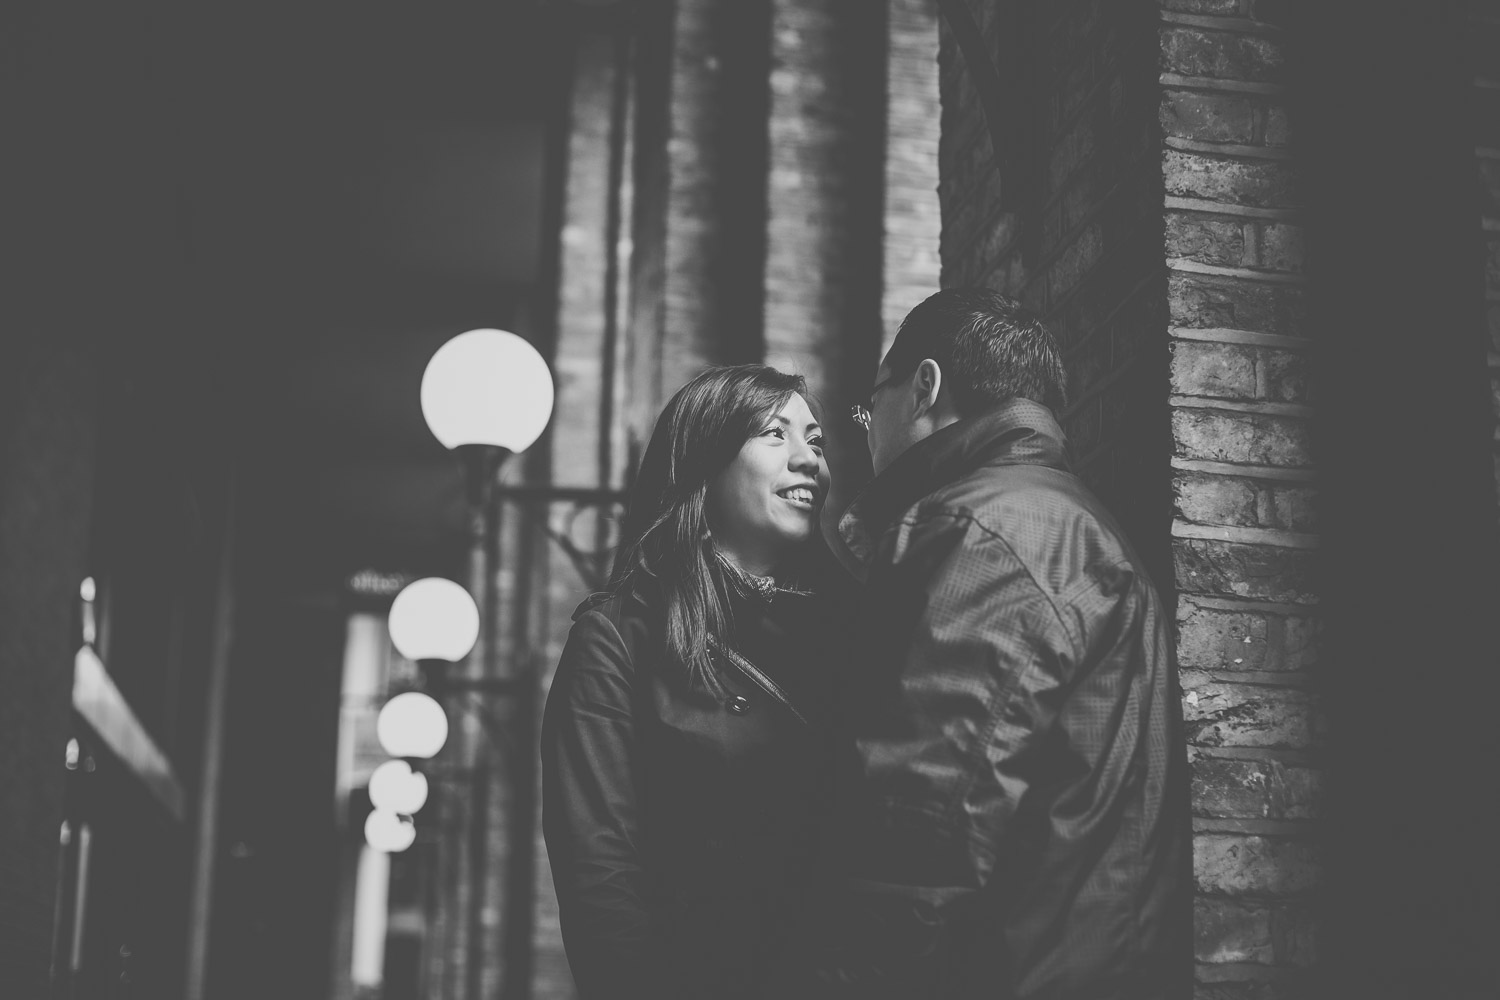 pre-wedding-engagement-session-in-london-portchester-and-notting-hill-hampshire-wedding-photographer-21.jpg